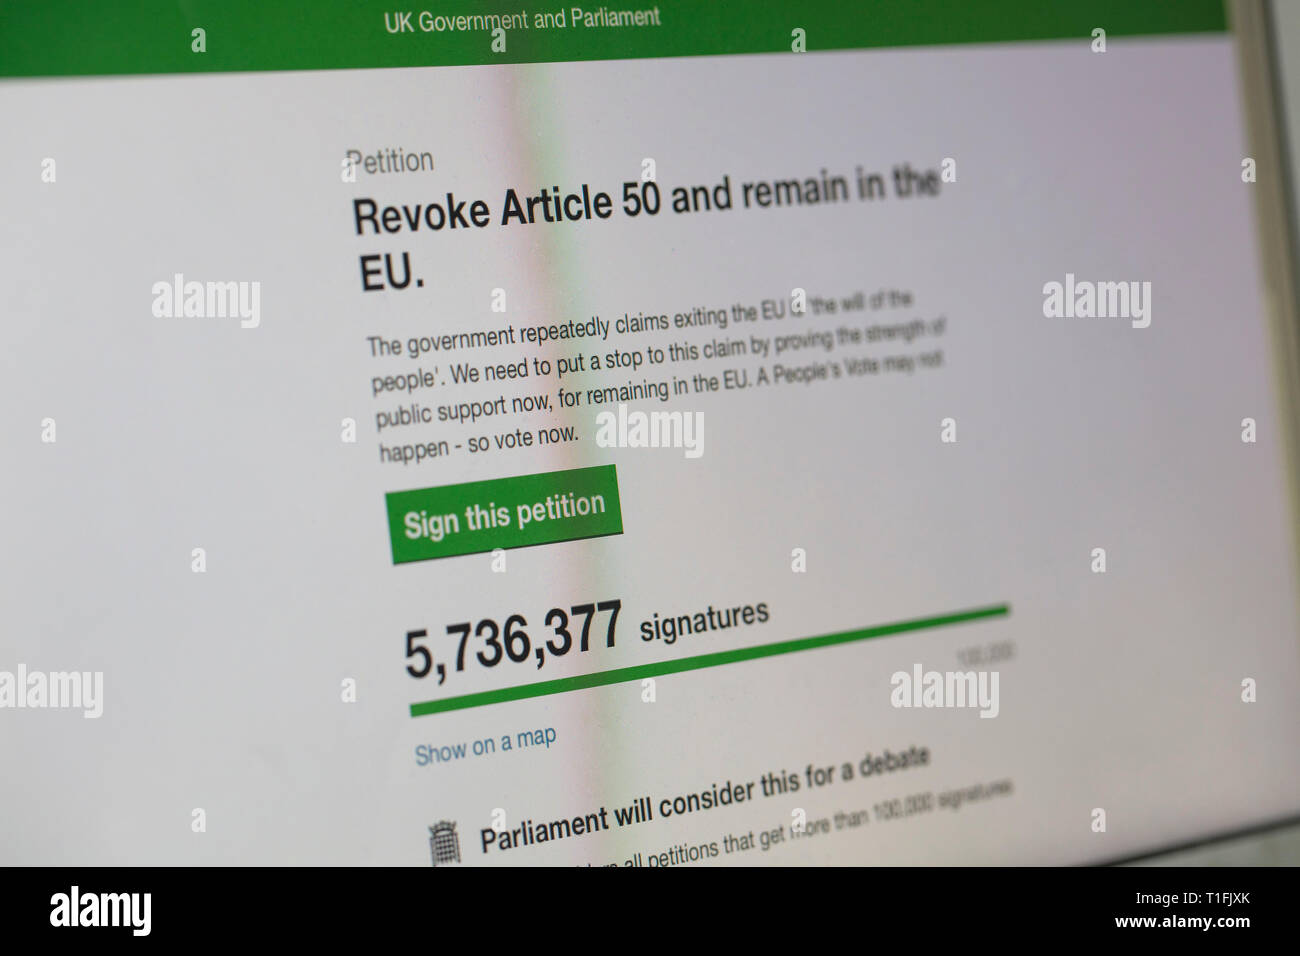 LONDON, UK - March 26th 2019:  Online petition to revoke article 50 and reconsider brexit has over 5 million signatures - Stock Image